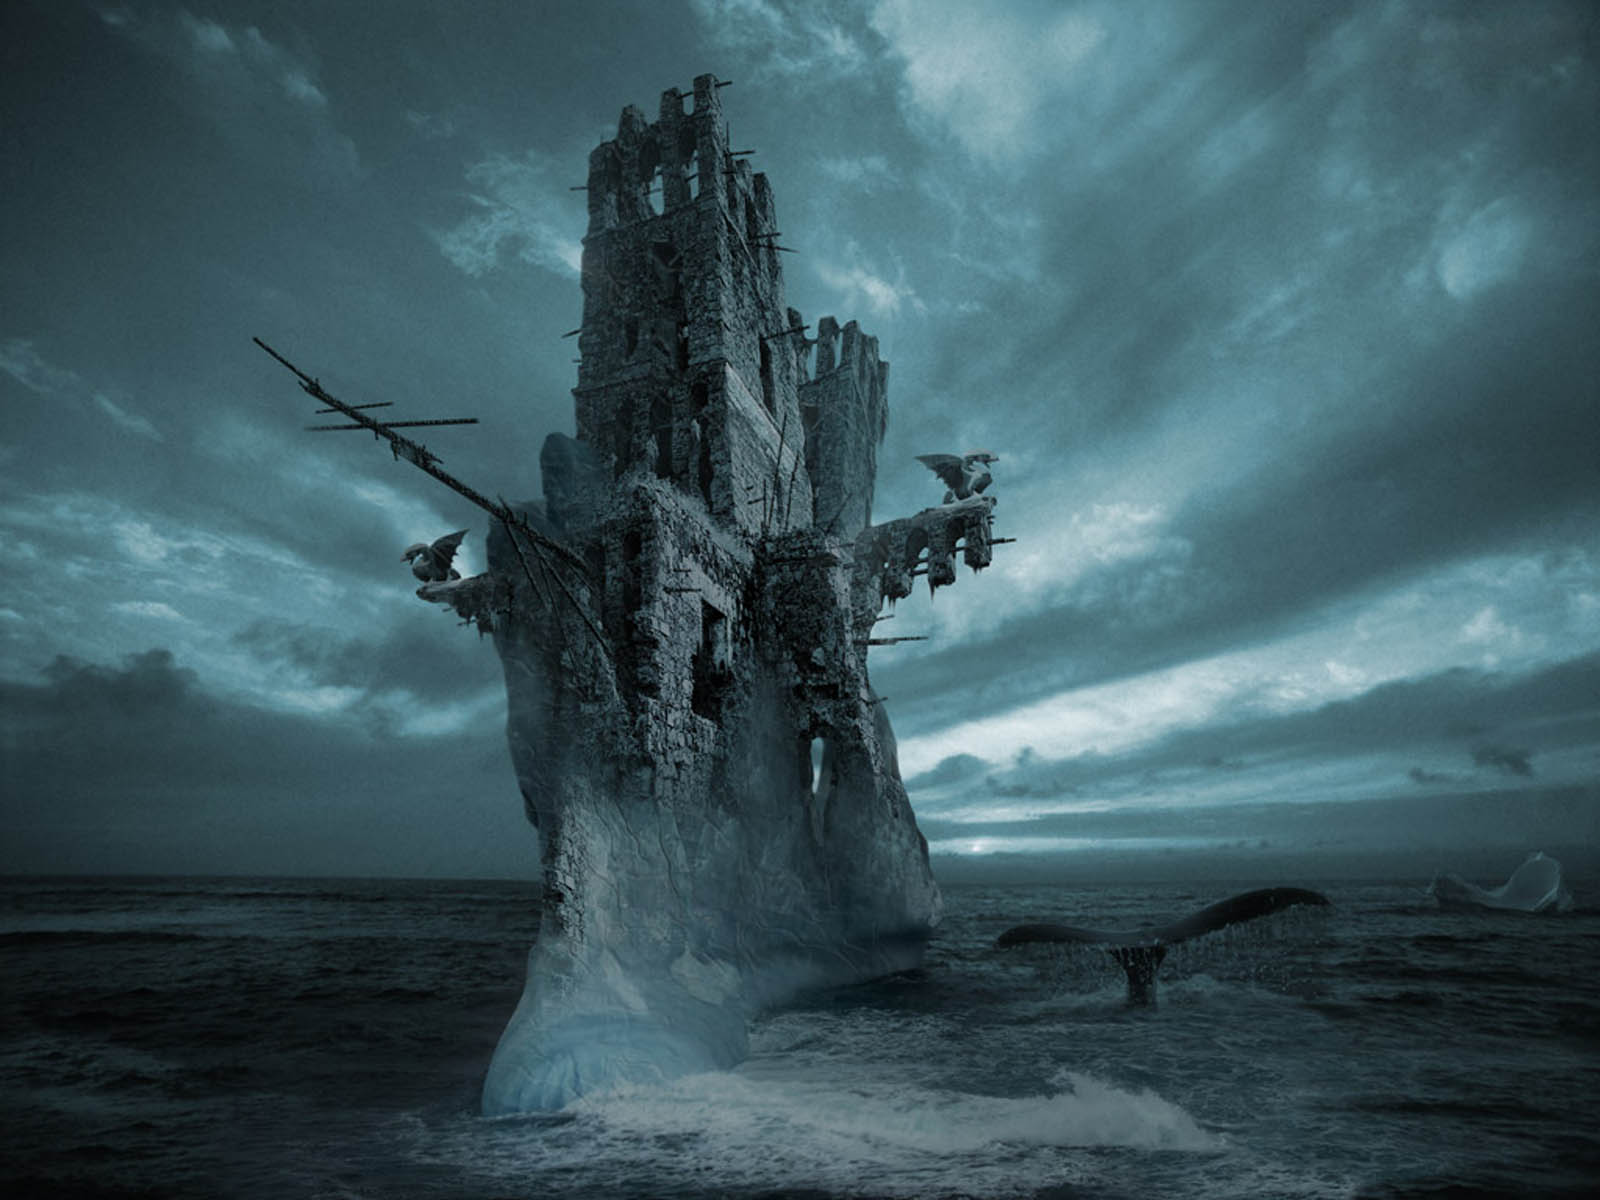 ghost ship wallpapers images photos pictures and backgrounds for 1600x1200